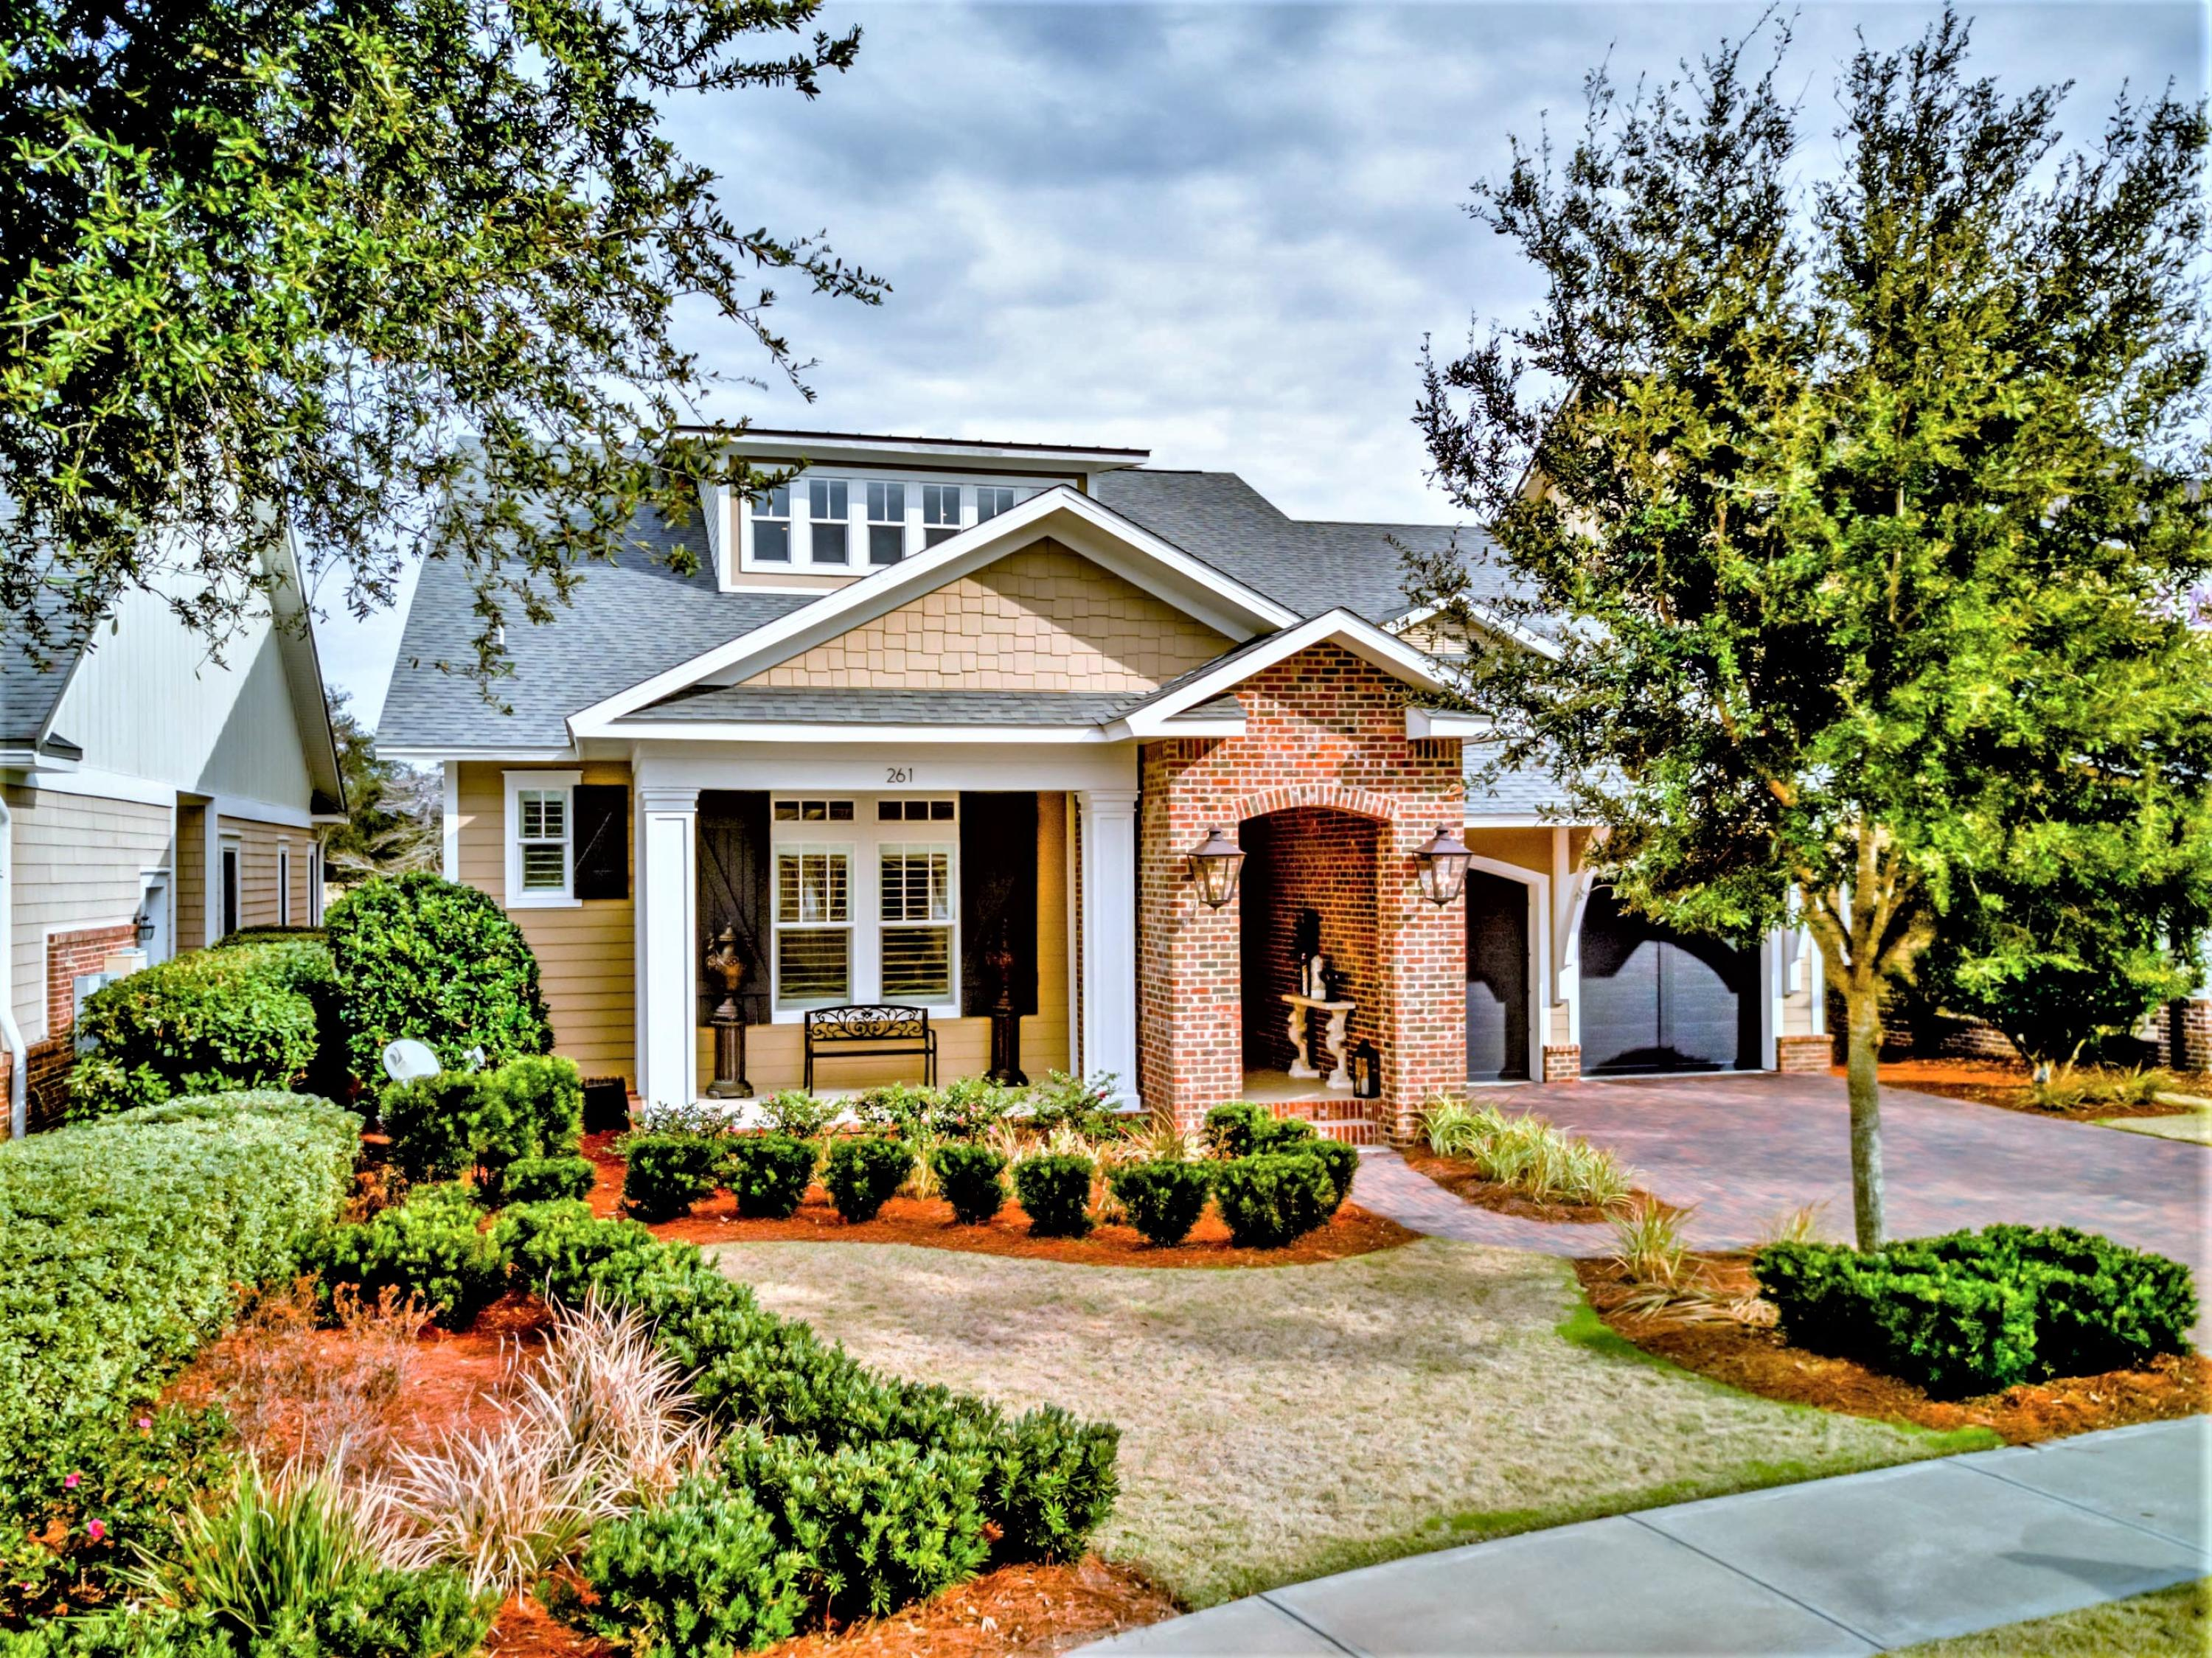 Photo of home for sale at 261 Champion, Destin FL